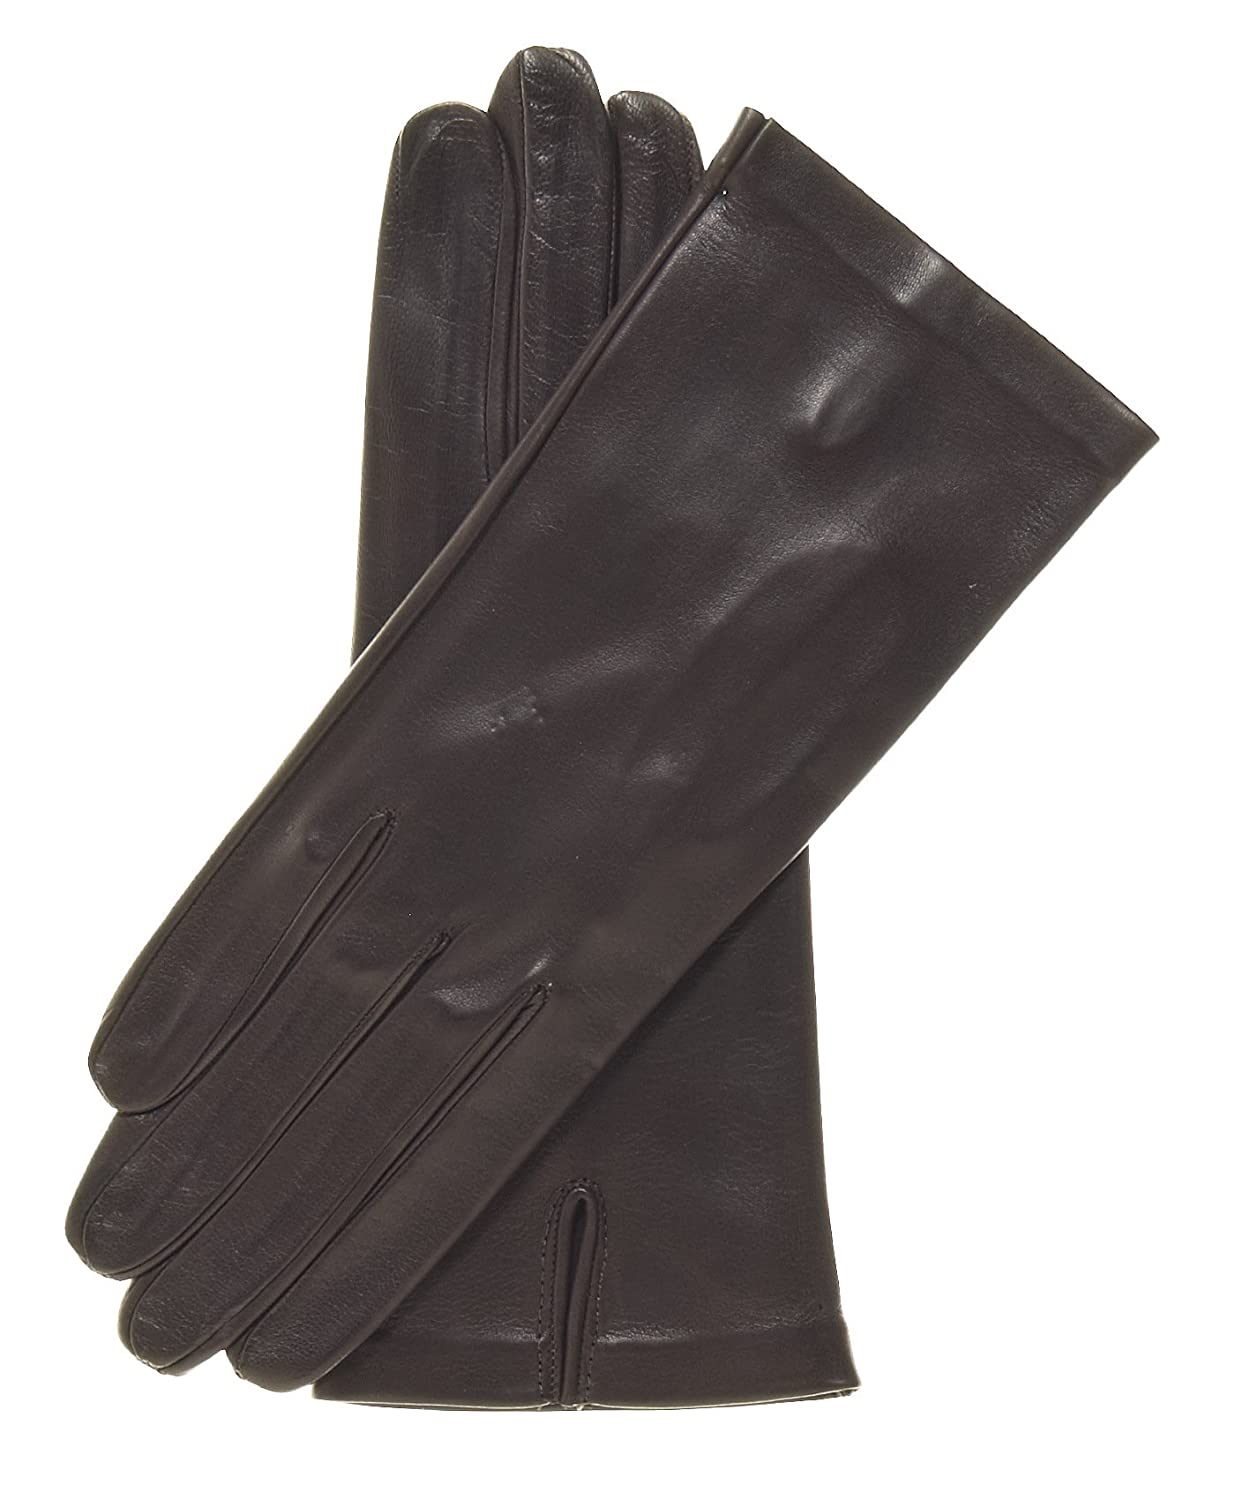 Ladies unlined leather driving gloves - Fratelli Orsini Women S Italian Unlined Leather Gloves Size 6 Color Black At Amazon Women S Clothing Store Cold Weather Gloves